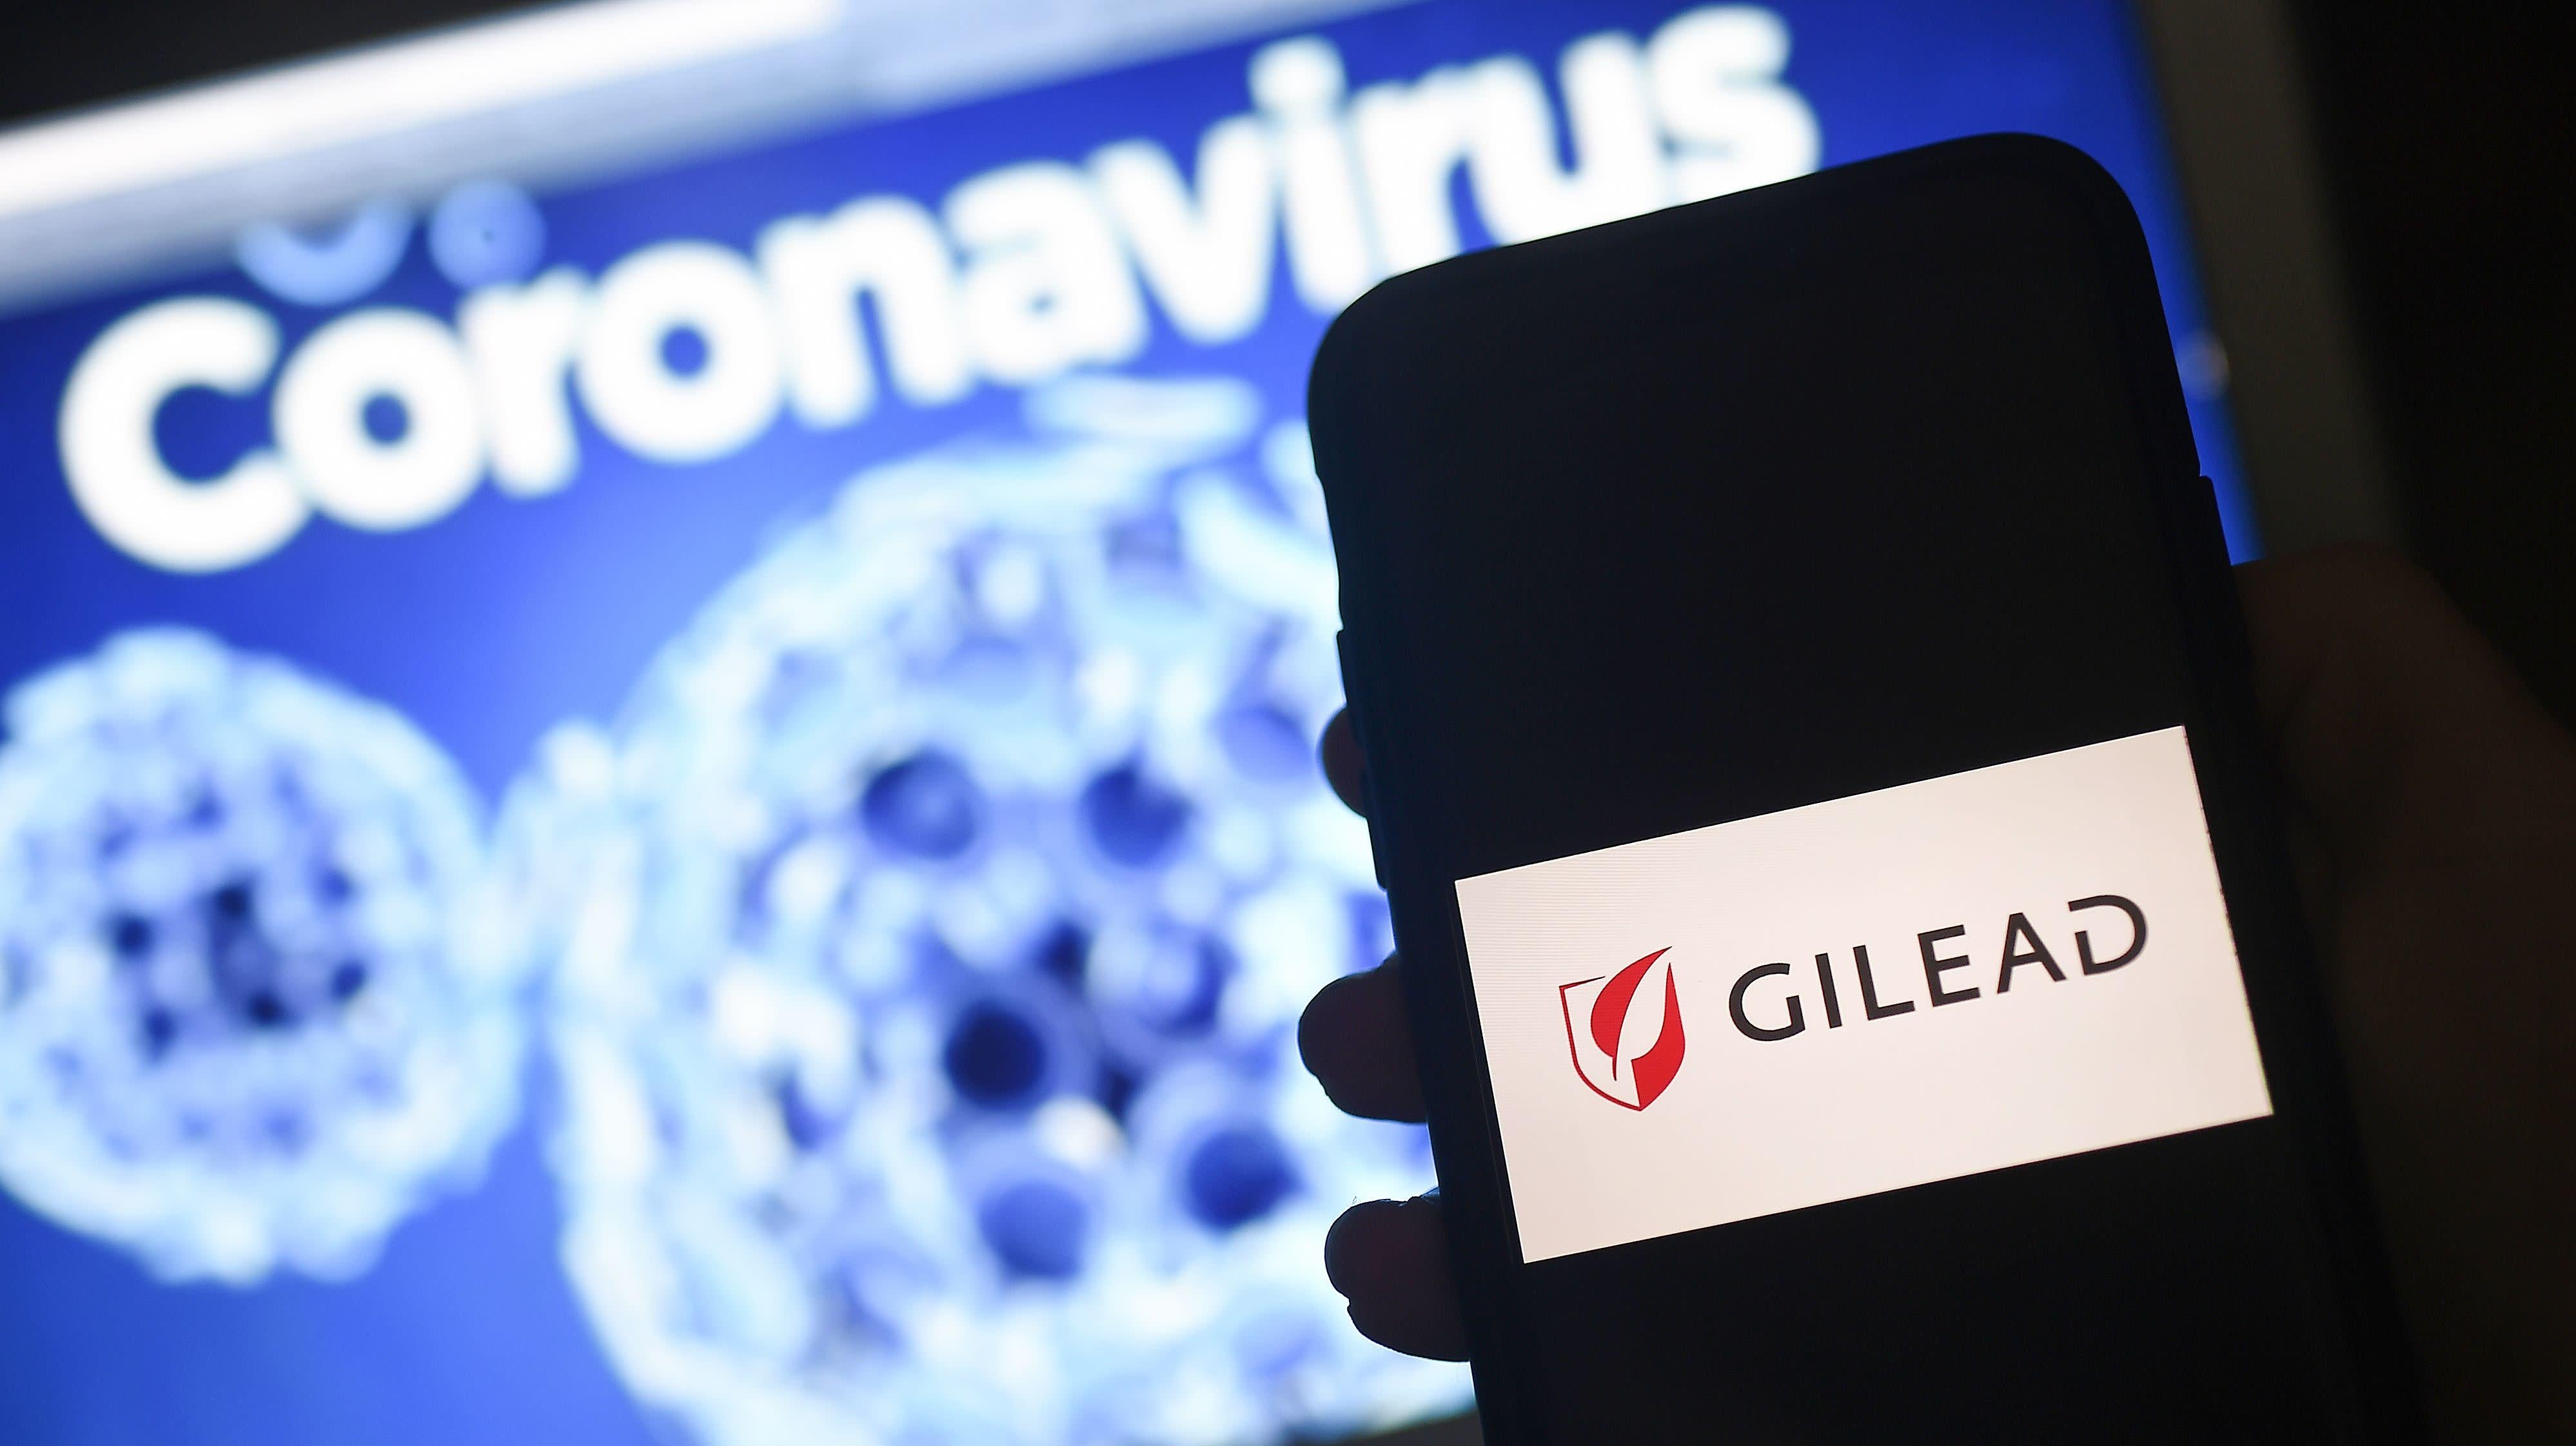 Pharma Giant Gilead Retracts Request To Extend Monopoly Status On Experimental COVID-19 Drug